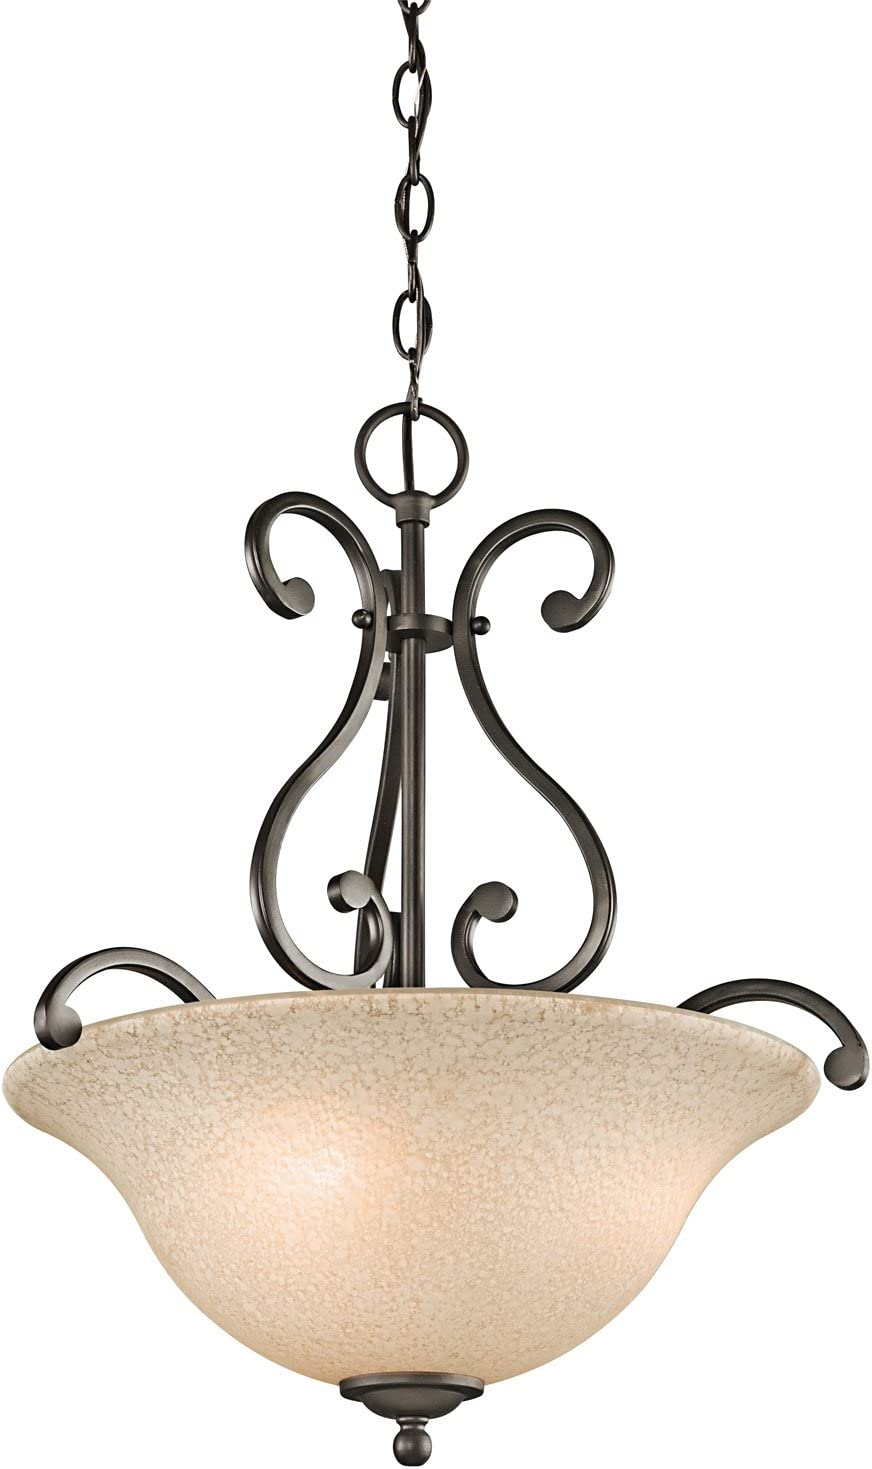 Kichler 43227OZ Camerena Pendant, 3 Light Incandescent 300 Total Watts, Olde Bronze